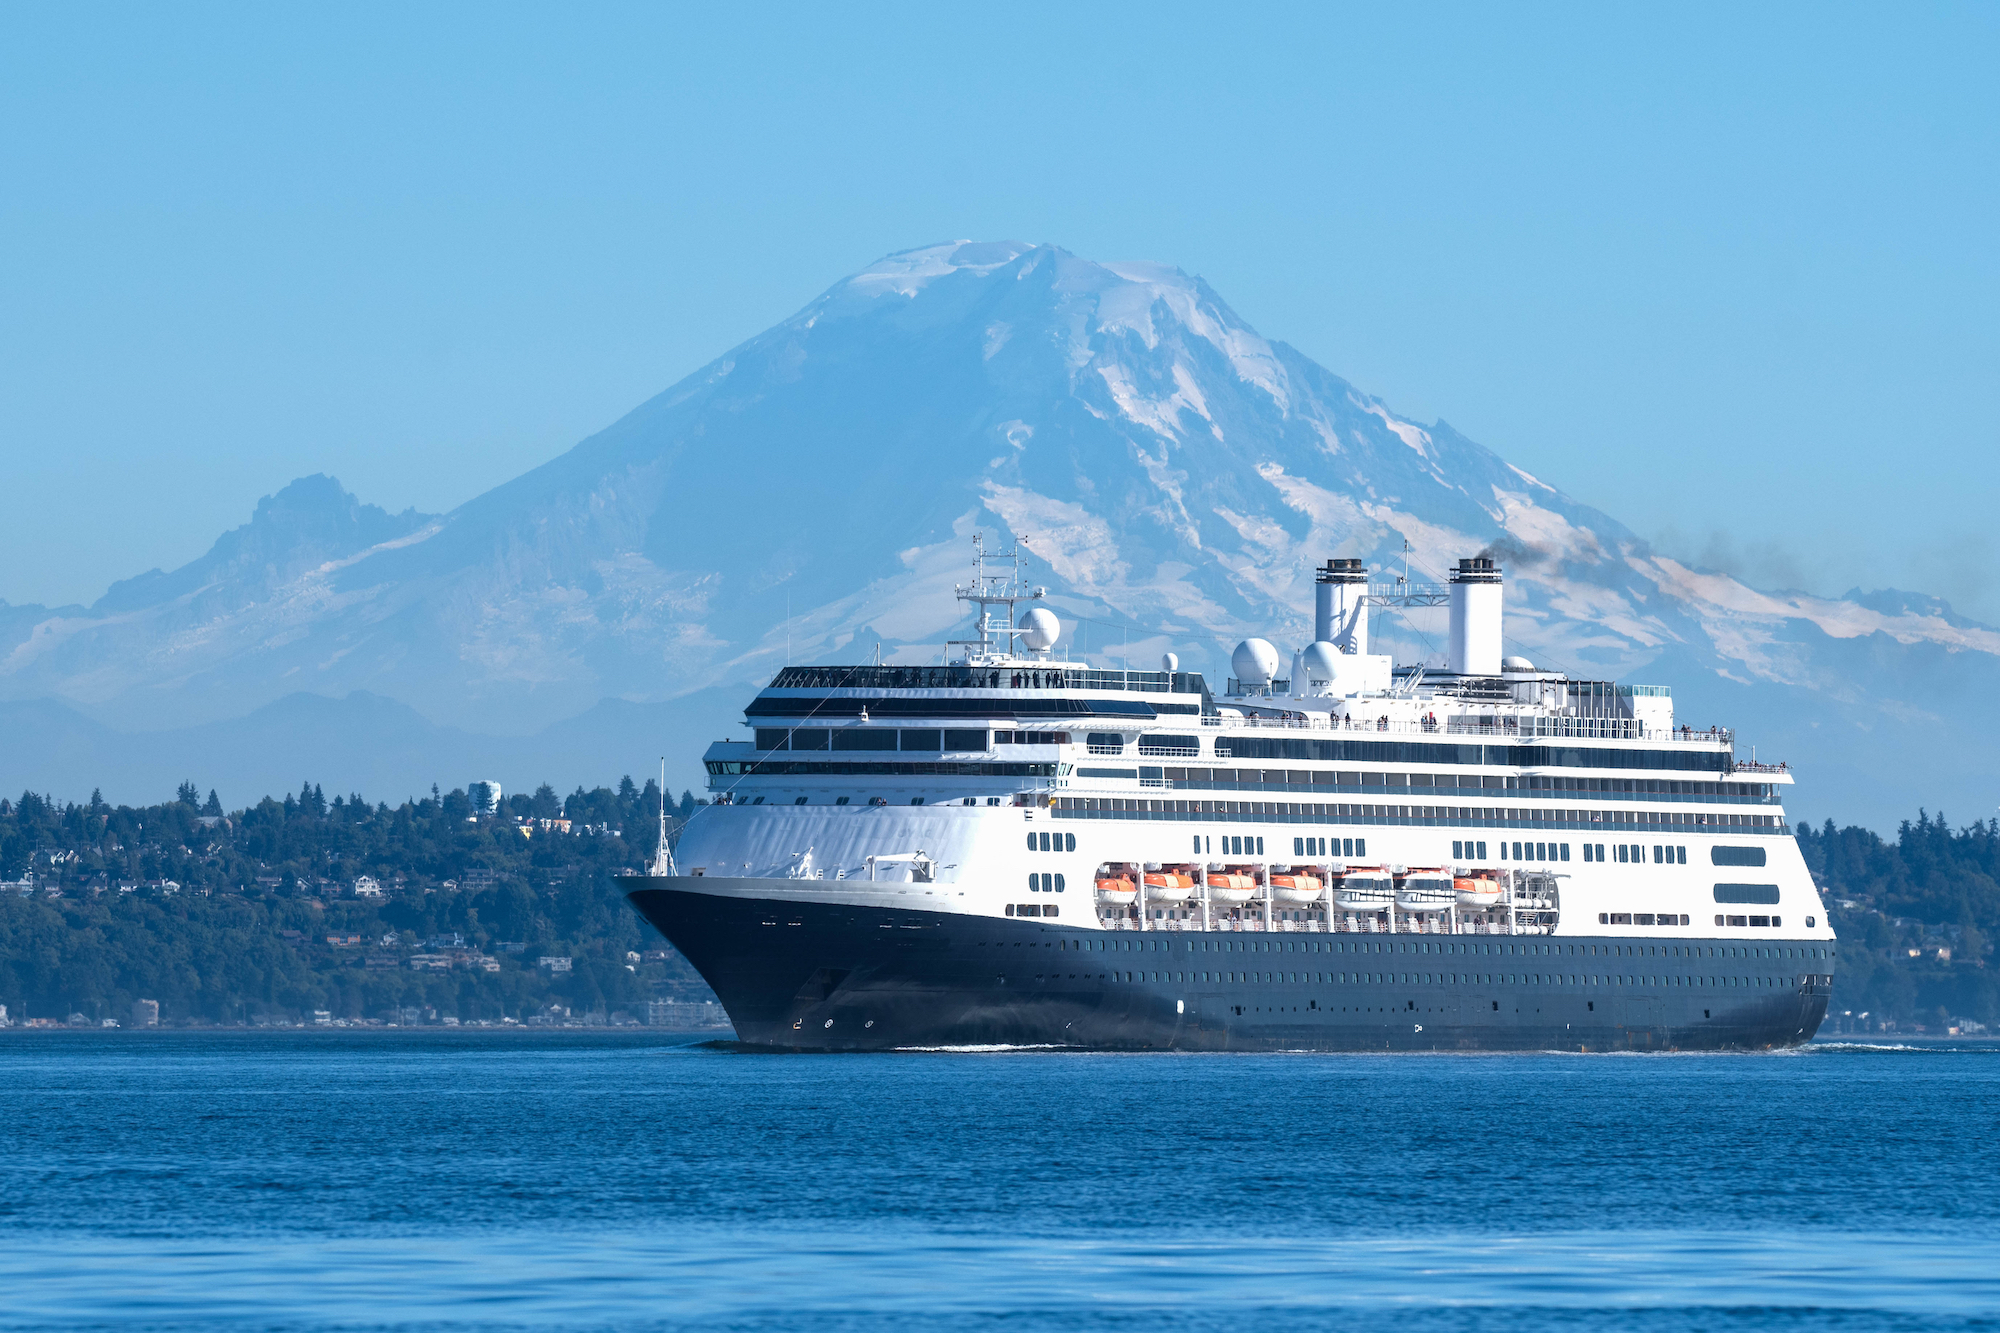 holland america cruise ship leaving seattle washington with mt. rainer in the background